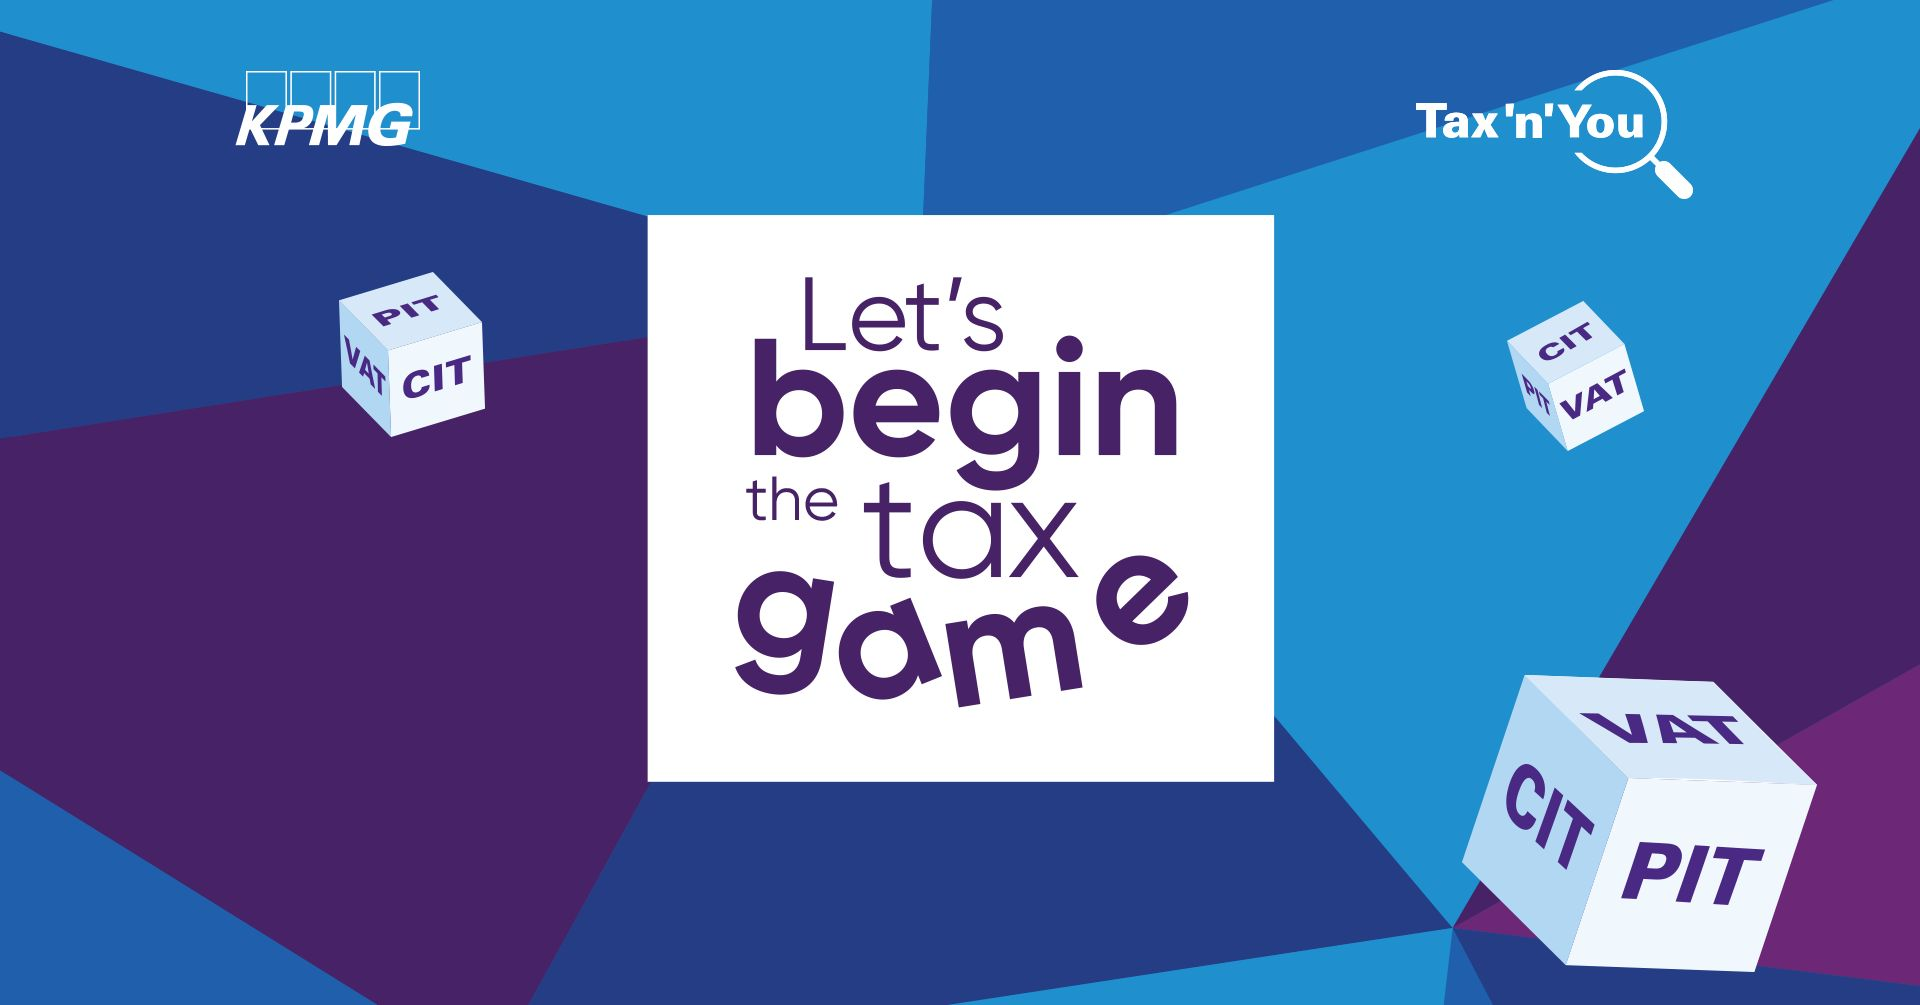 Tax'n'You 2019 | Let's begin the tax game!